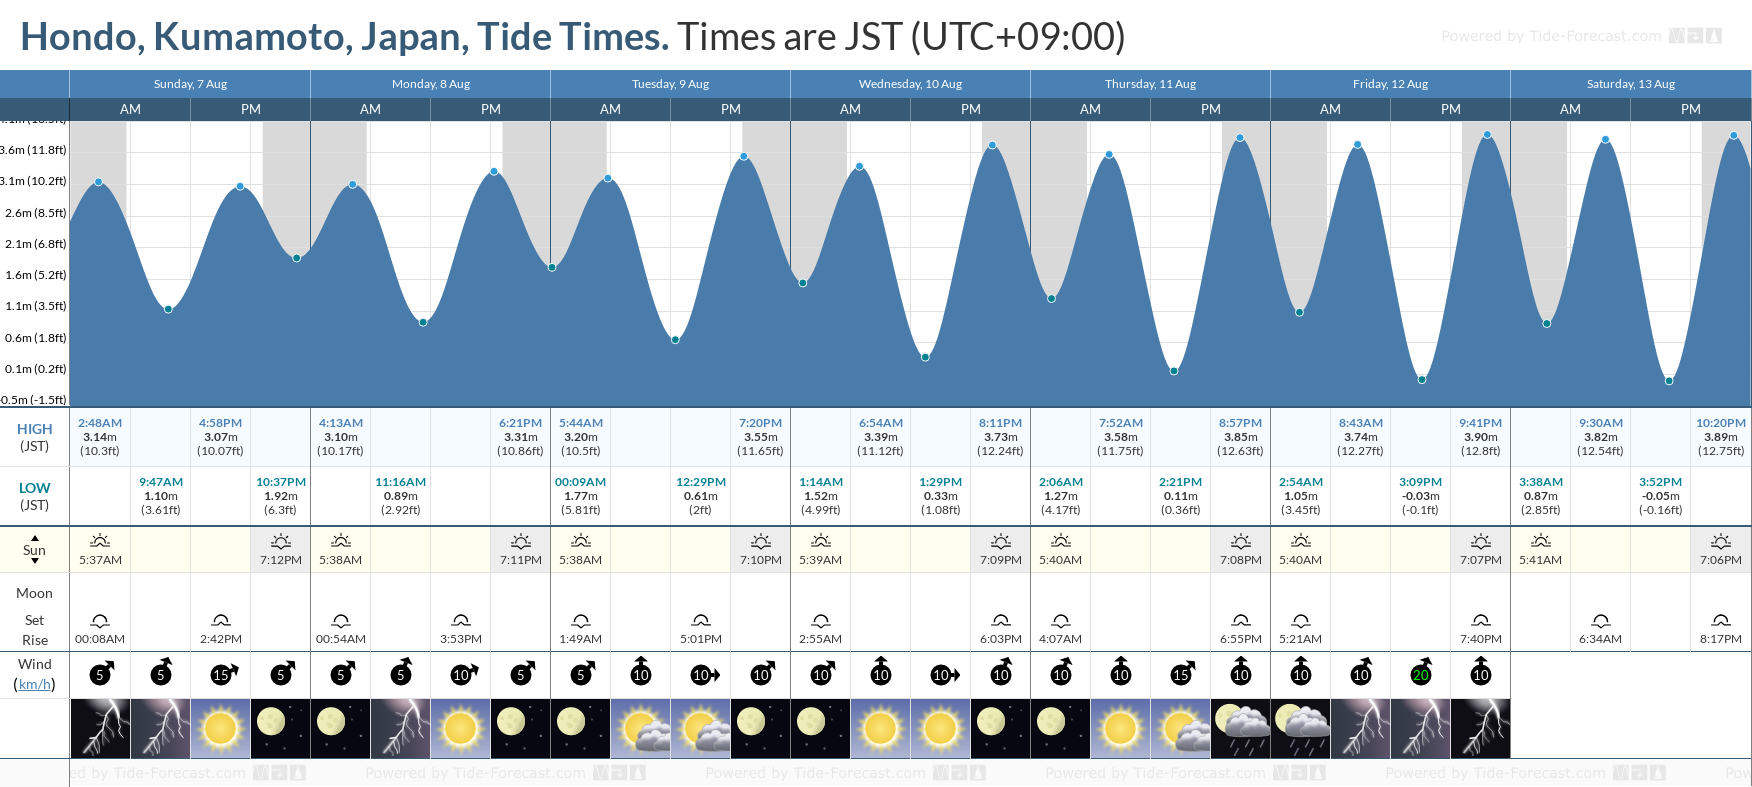 Hondo, Kumamoto, Japan Tide Chart including high and low tide tide times for the next 7 days